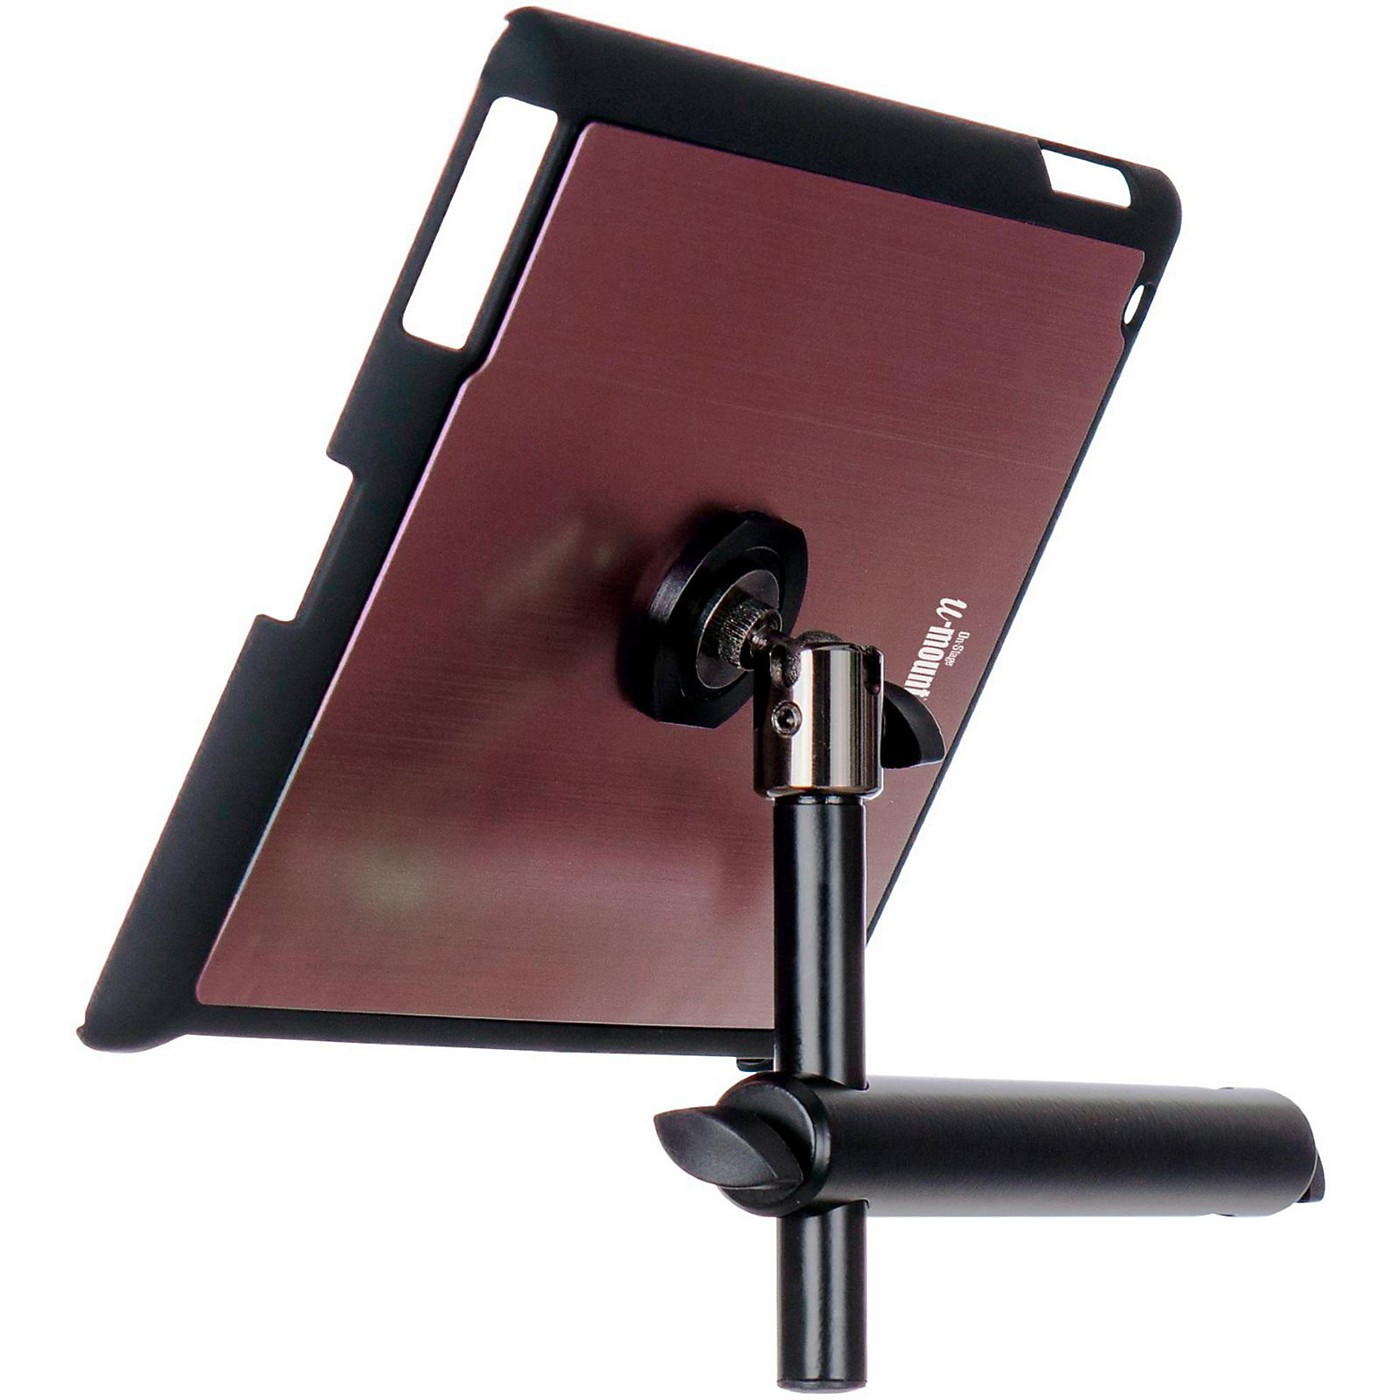 On-Stage TCM9160 Tablet Mounting System with Snap-On Cover thumbnail